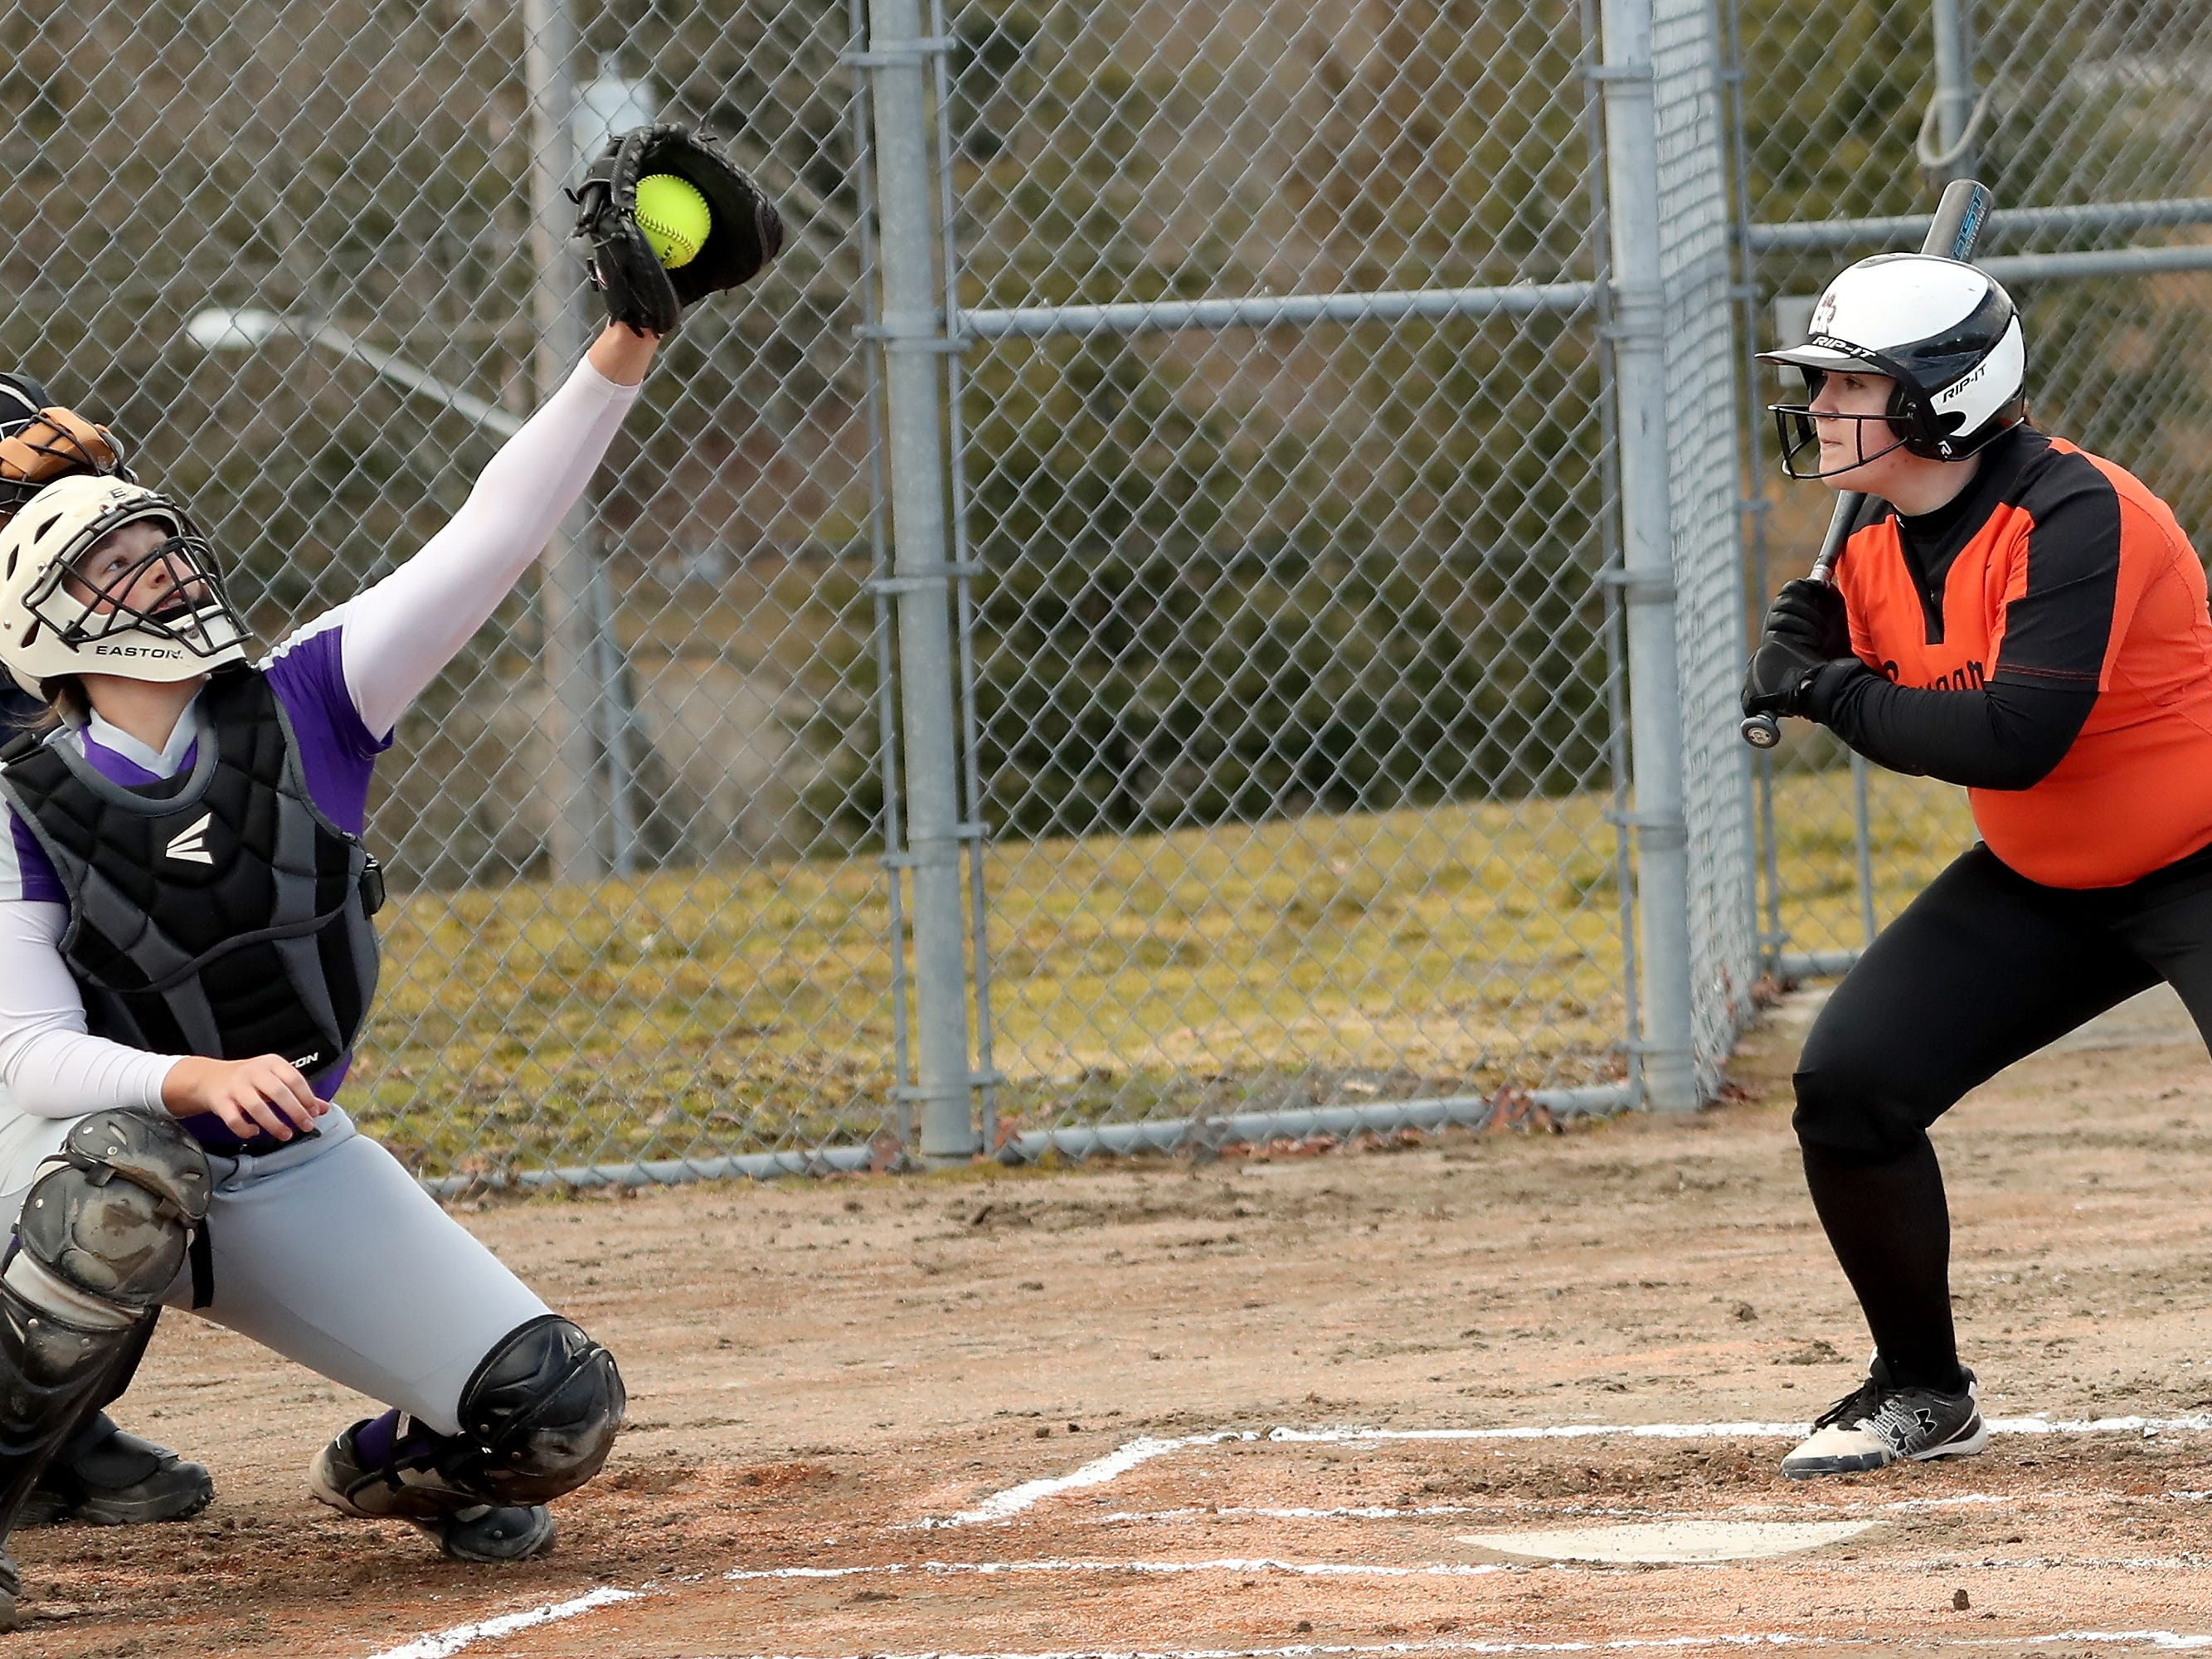 North Kitsap vs Central Kitsap Softball in Poulsbo on Wednesday, March 13, 2019.